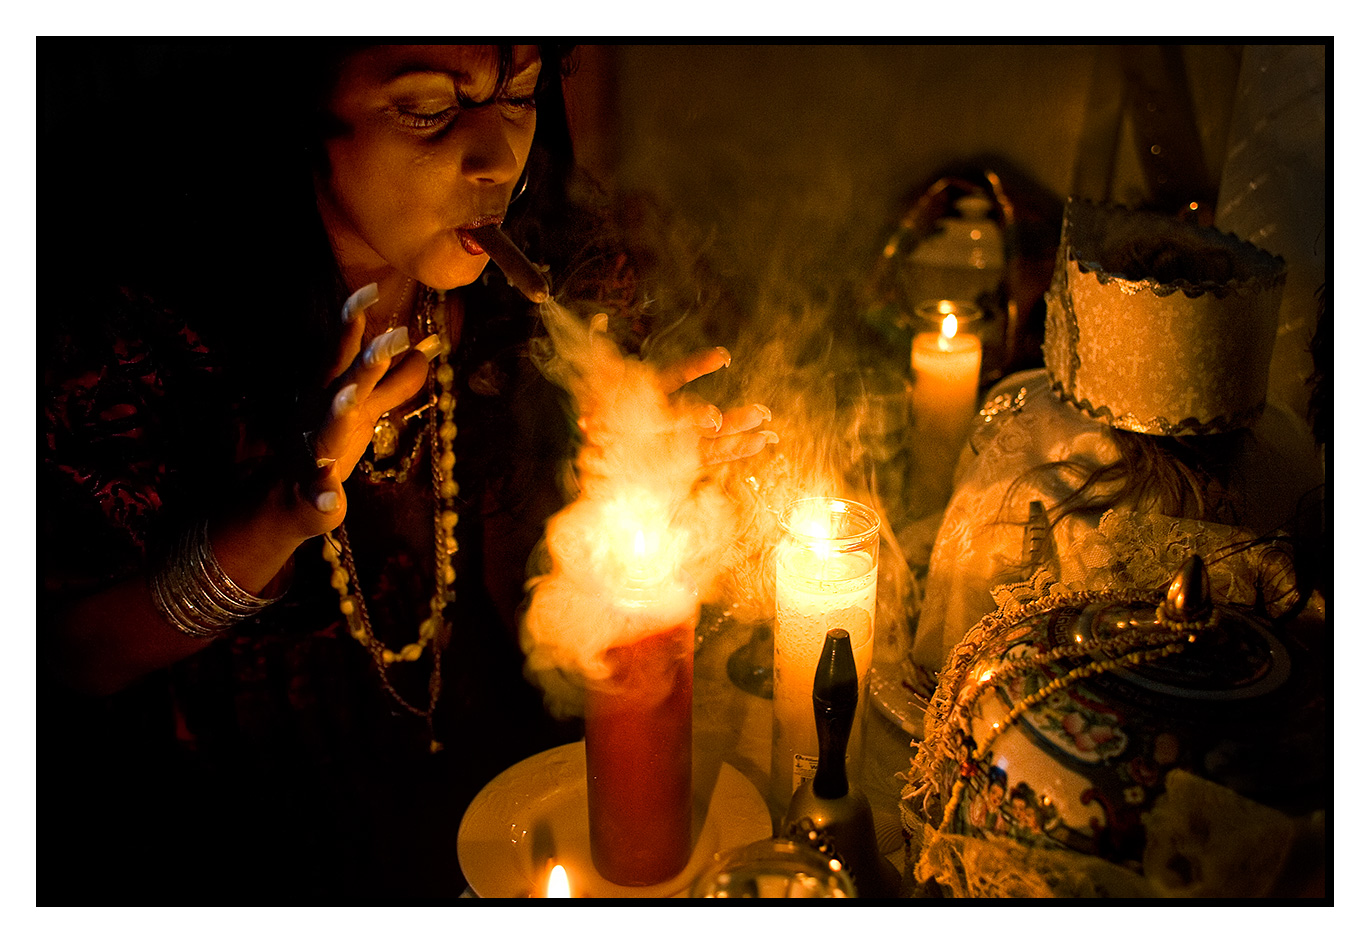 A Santeria Priestess, performs a sacred ceremony to rid evil sprits for a client in her apartment on The Lower East Side of New York